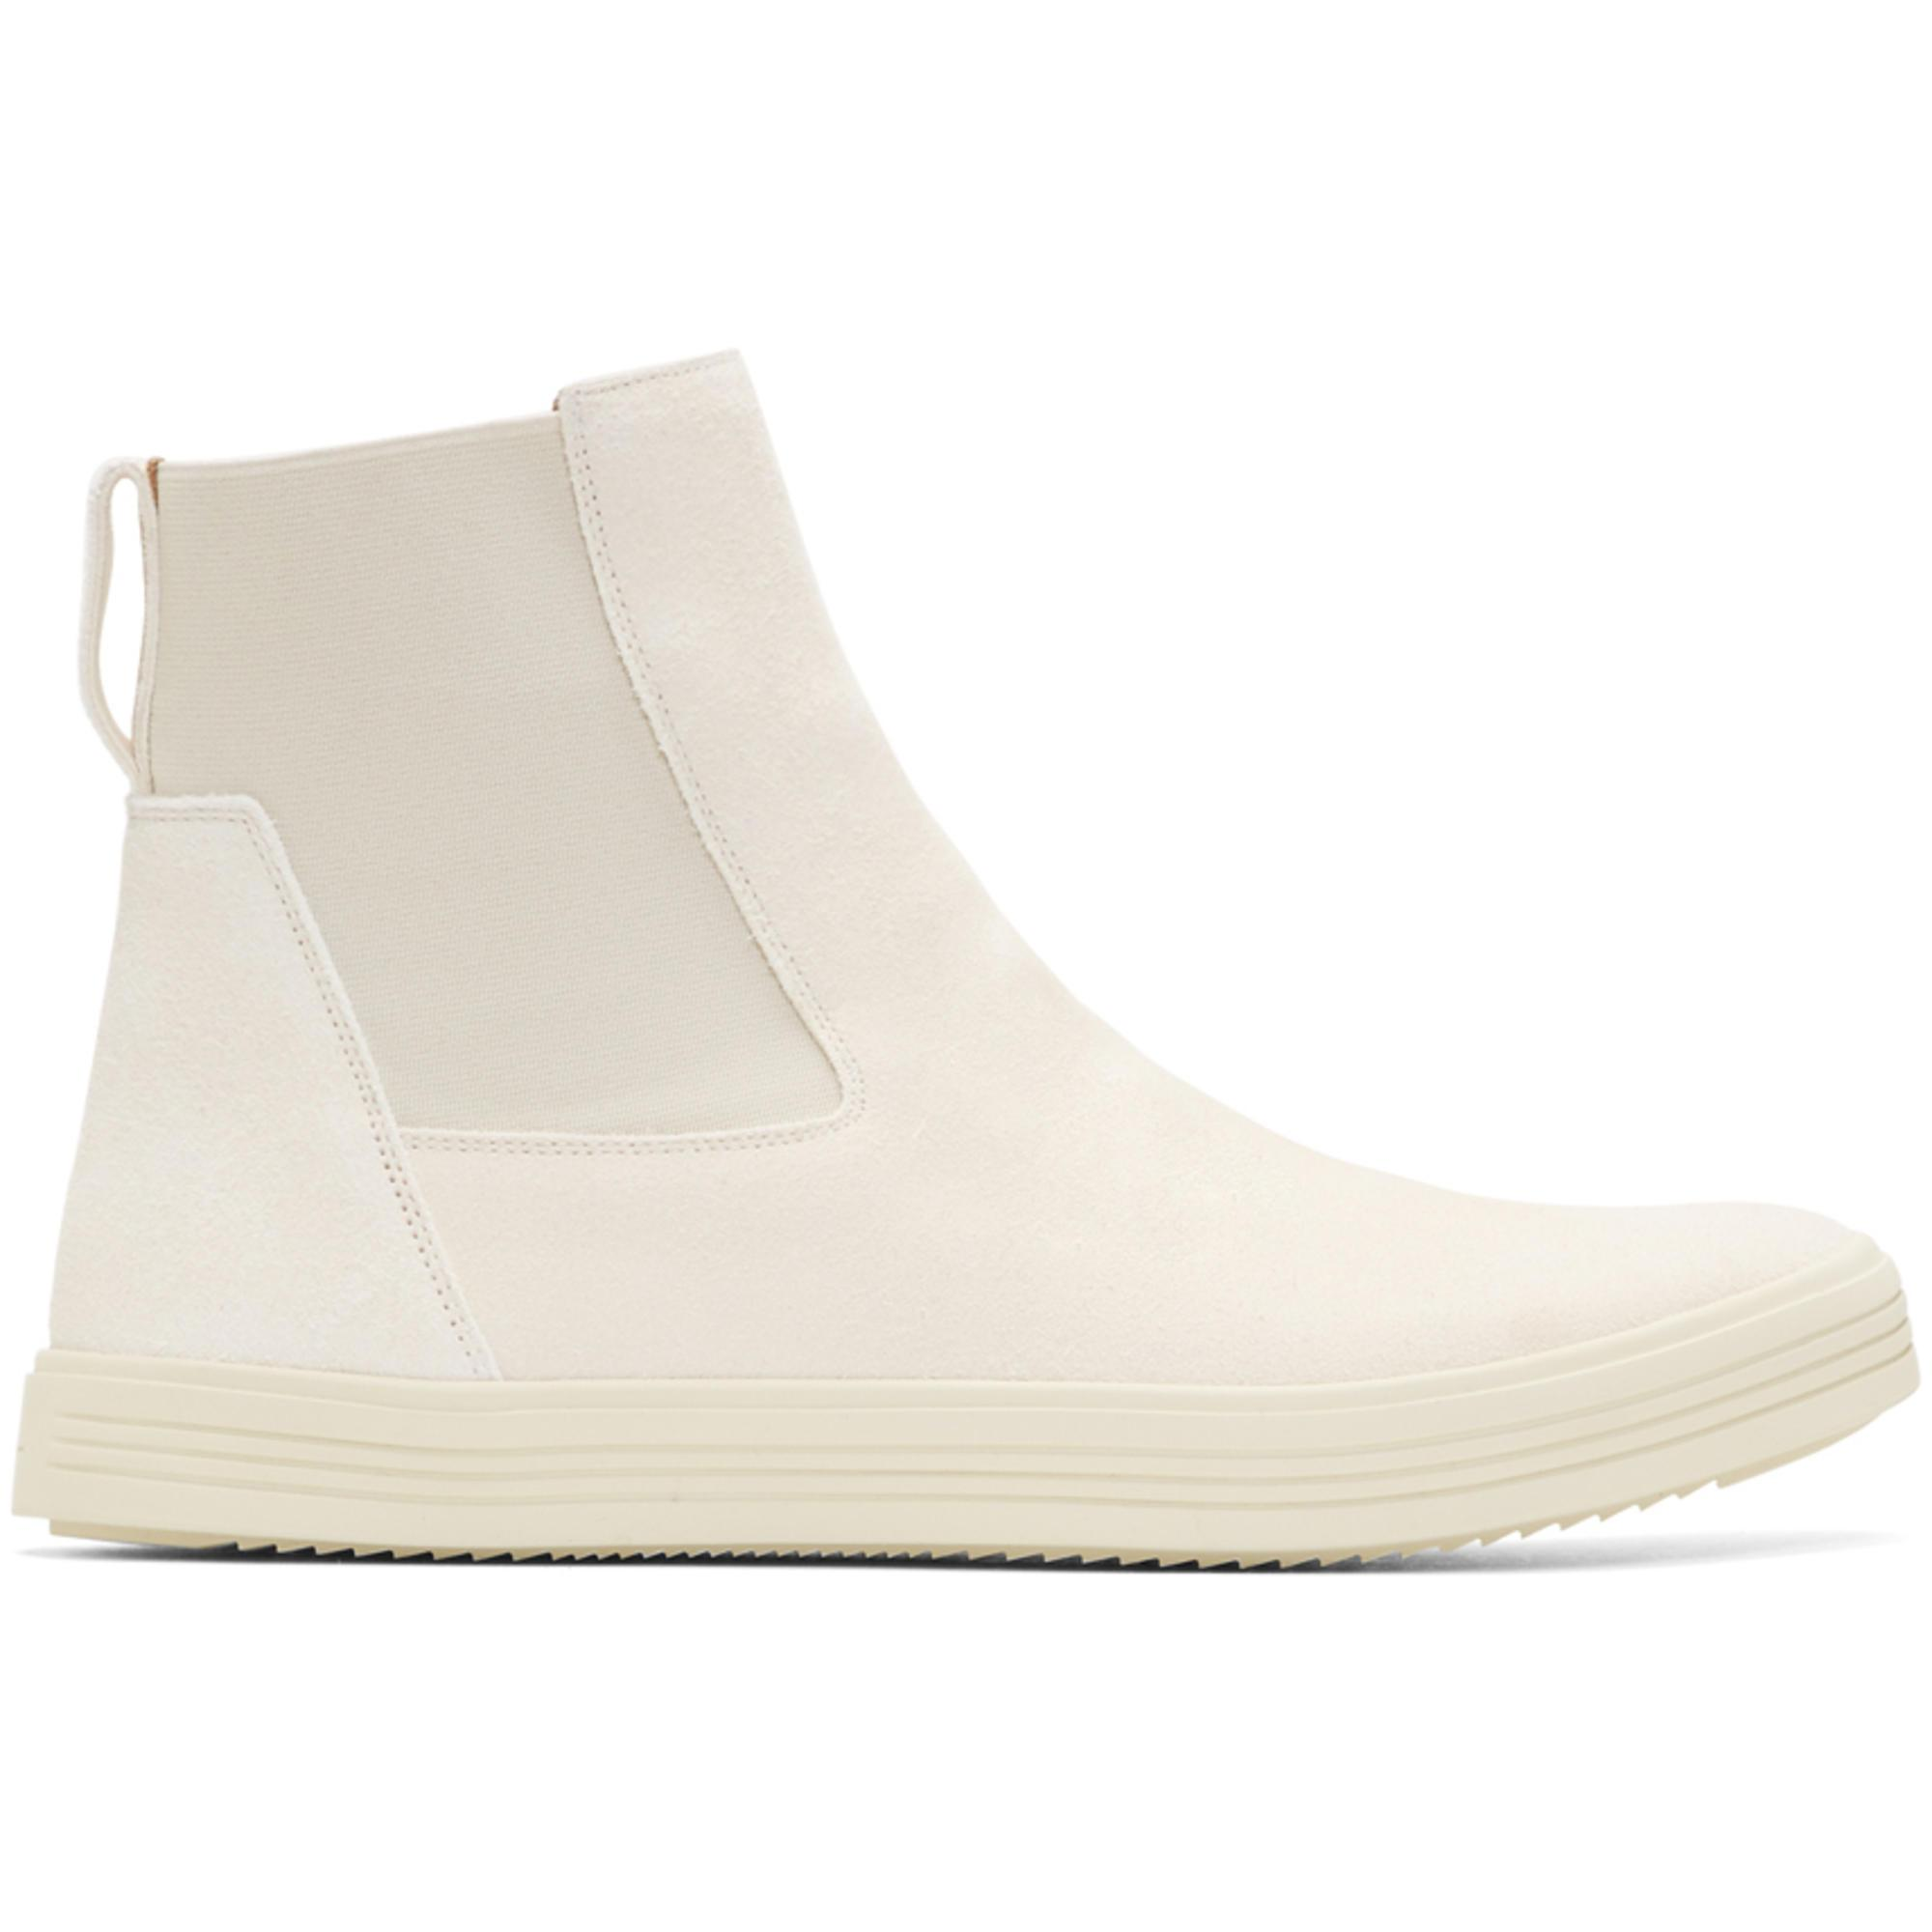 Latest Sale Online Outlet Low Shipping Rick Owens Off- Suede Mastodon Elastic Boots Drop Shipping Sale New Cheap Fashionable MreVQJ